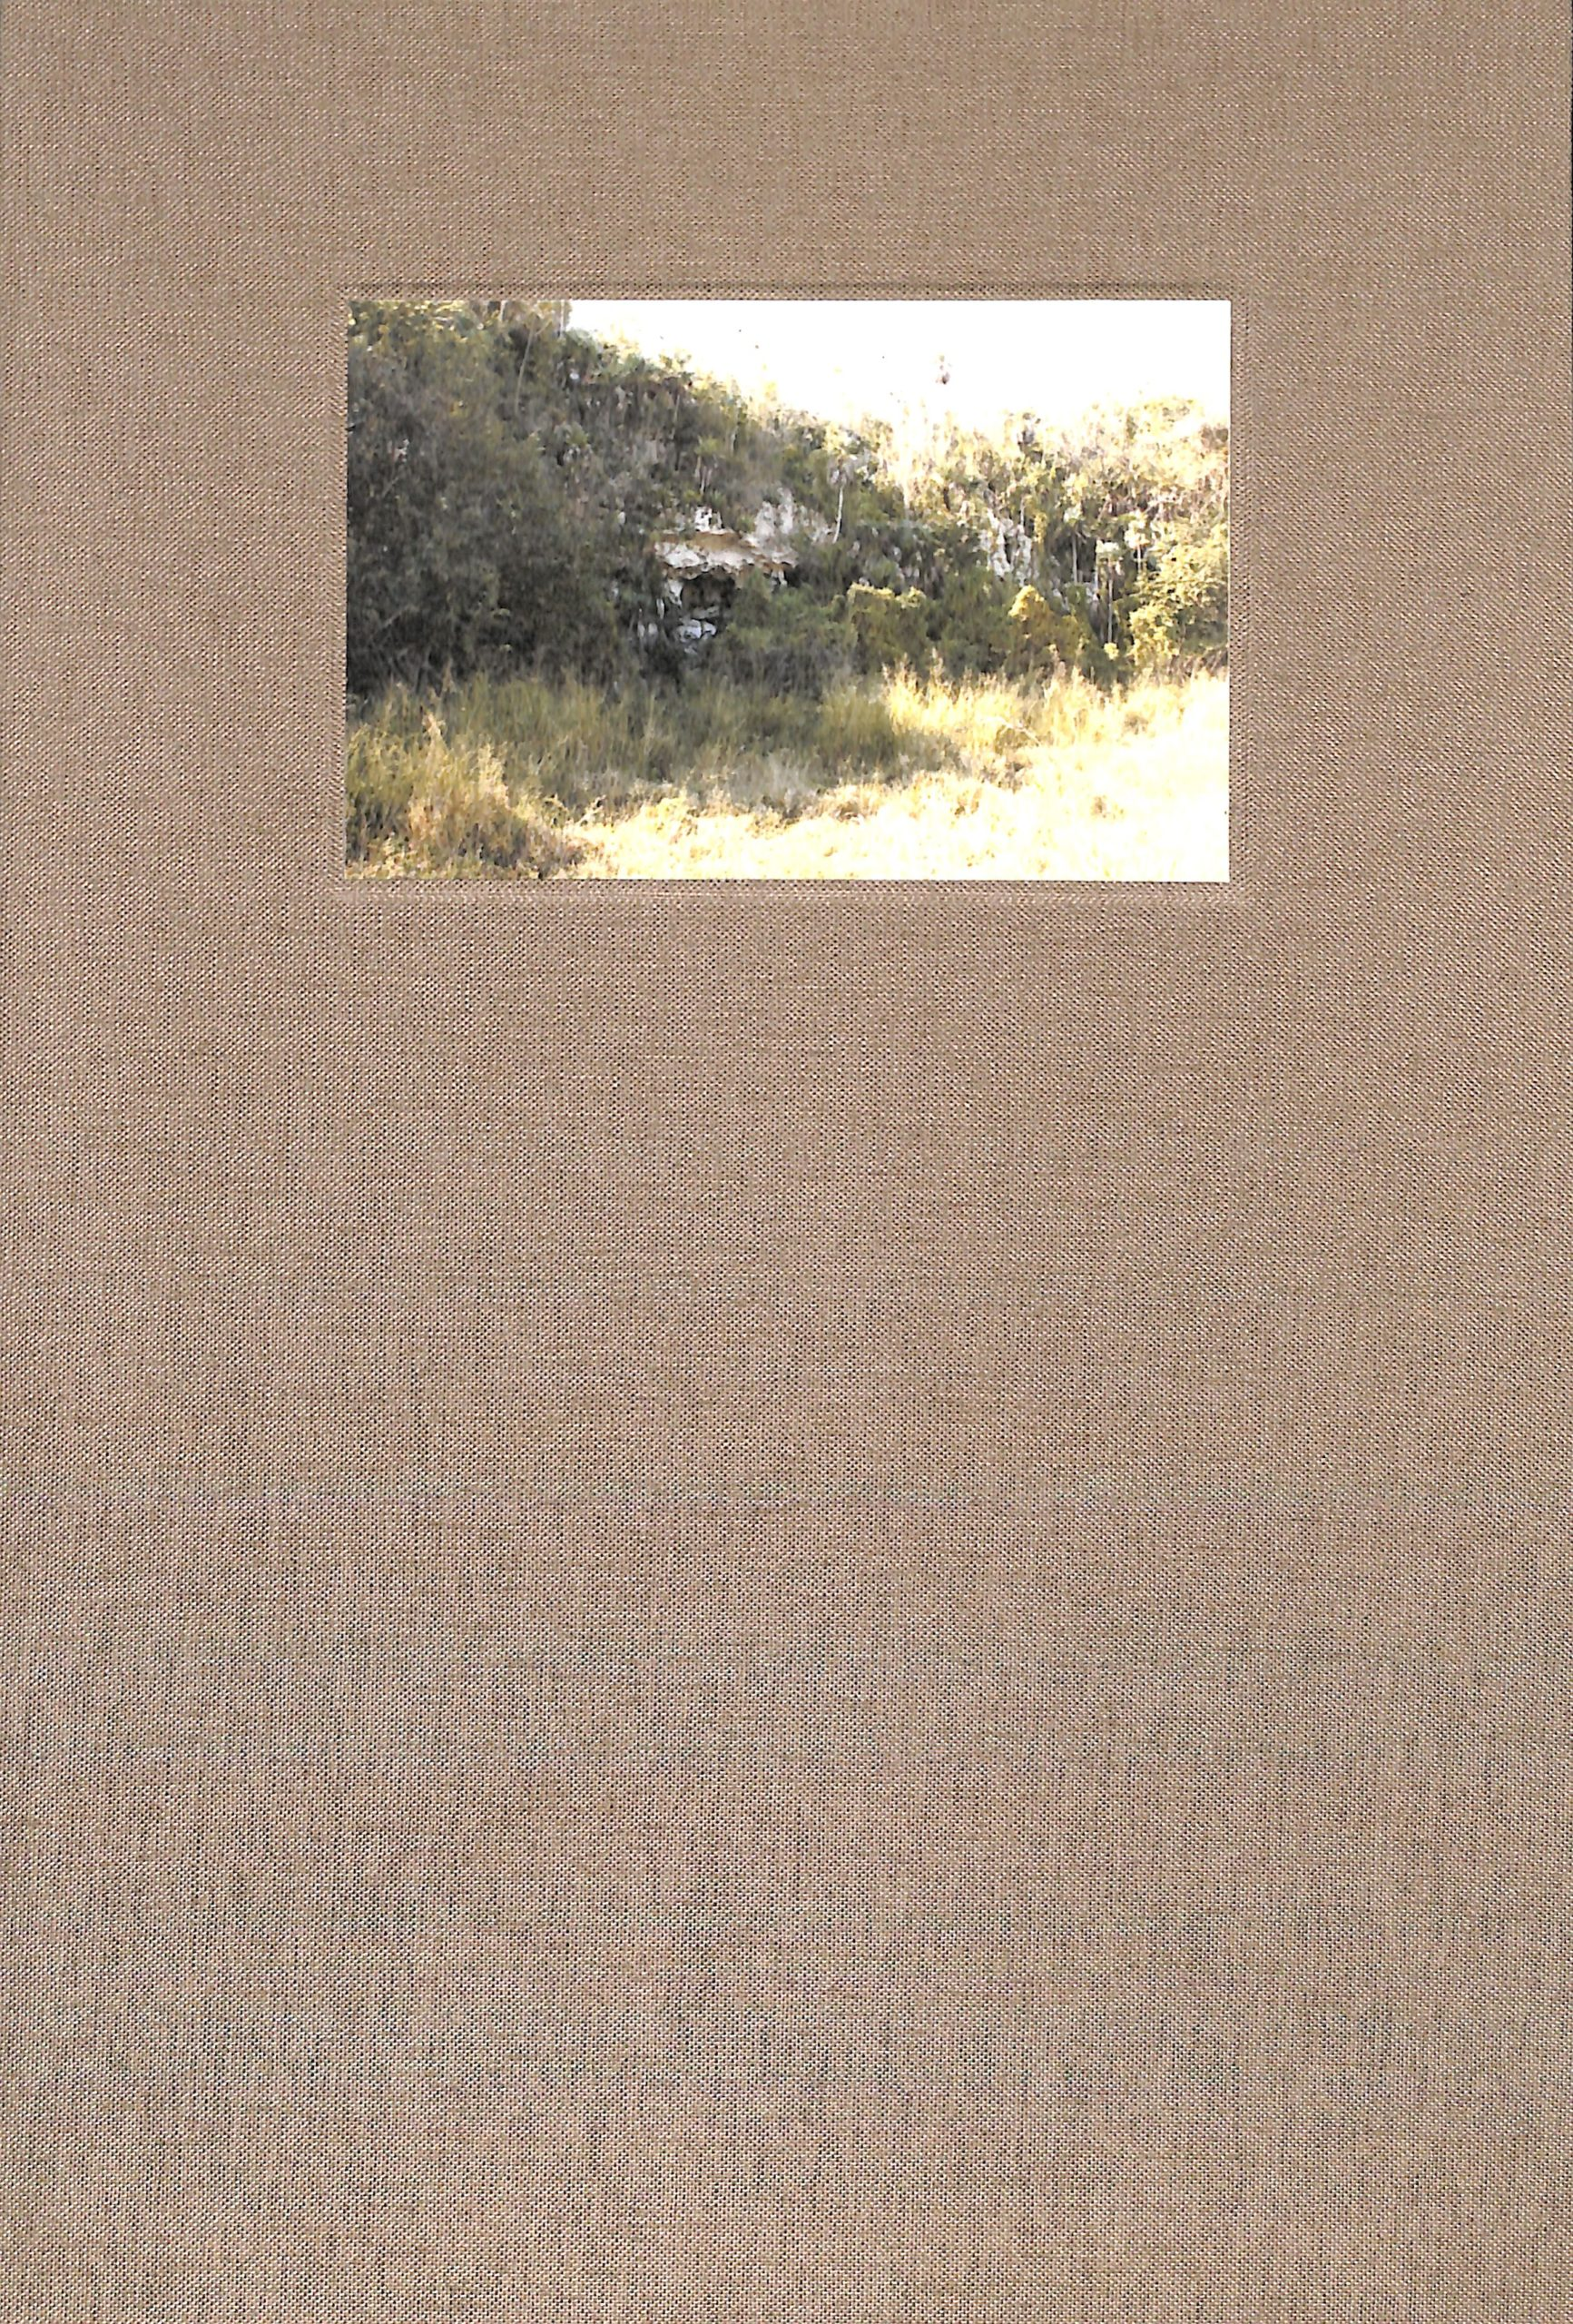 tan clamshell box with small landscape photo